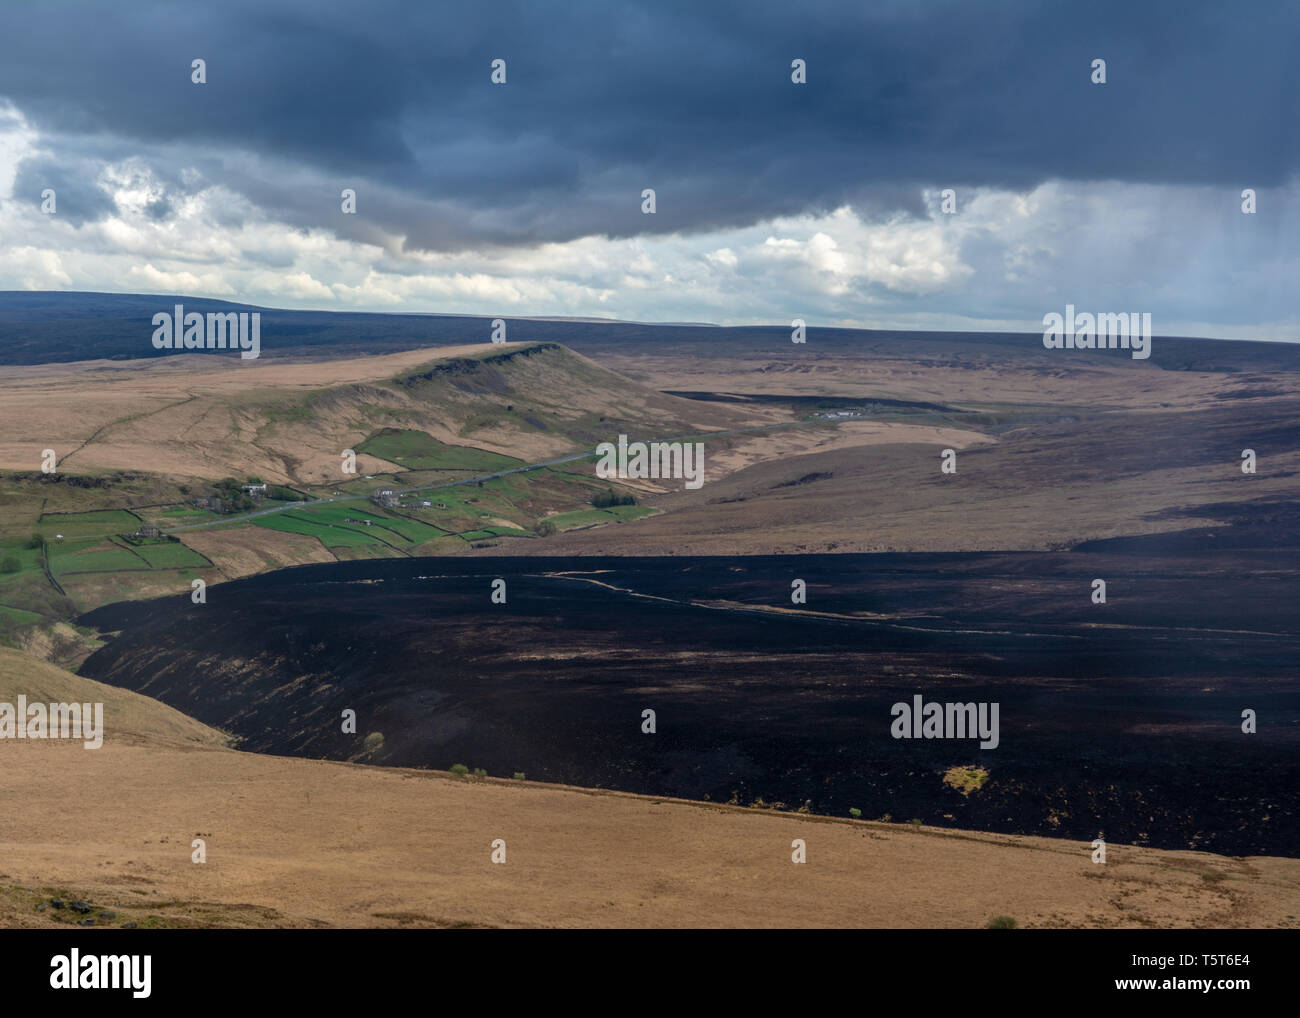 The aftermath of the fires over Marsden moors, with a huge section of the land now black. - Stock Image